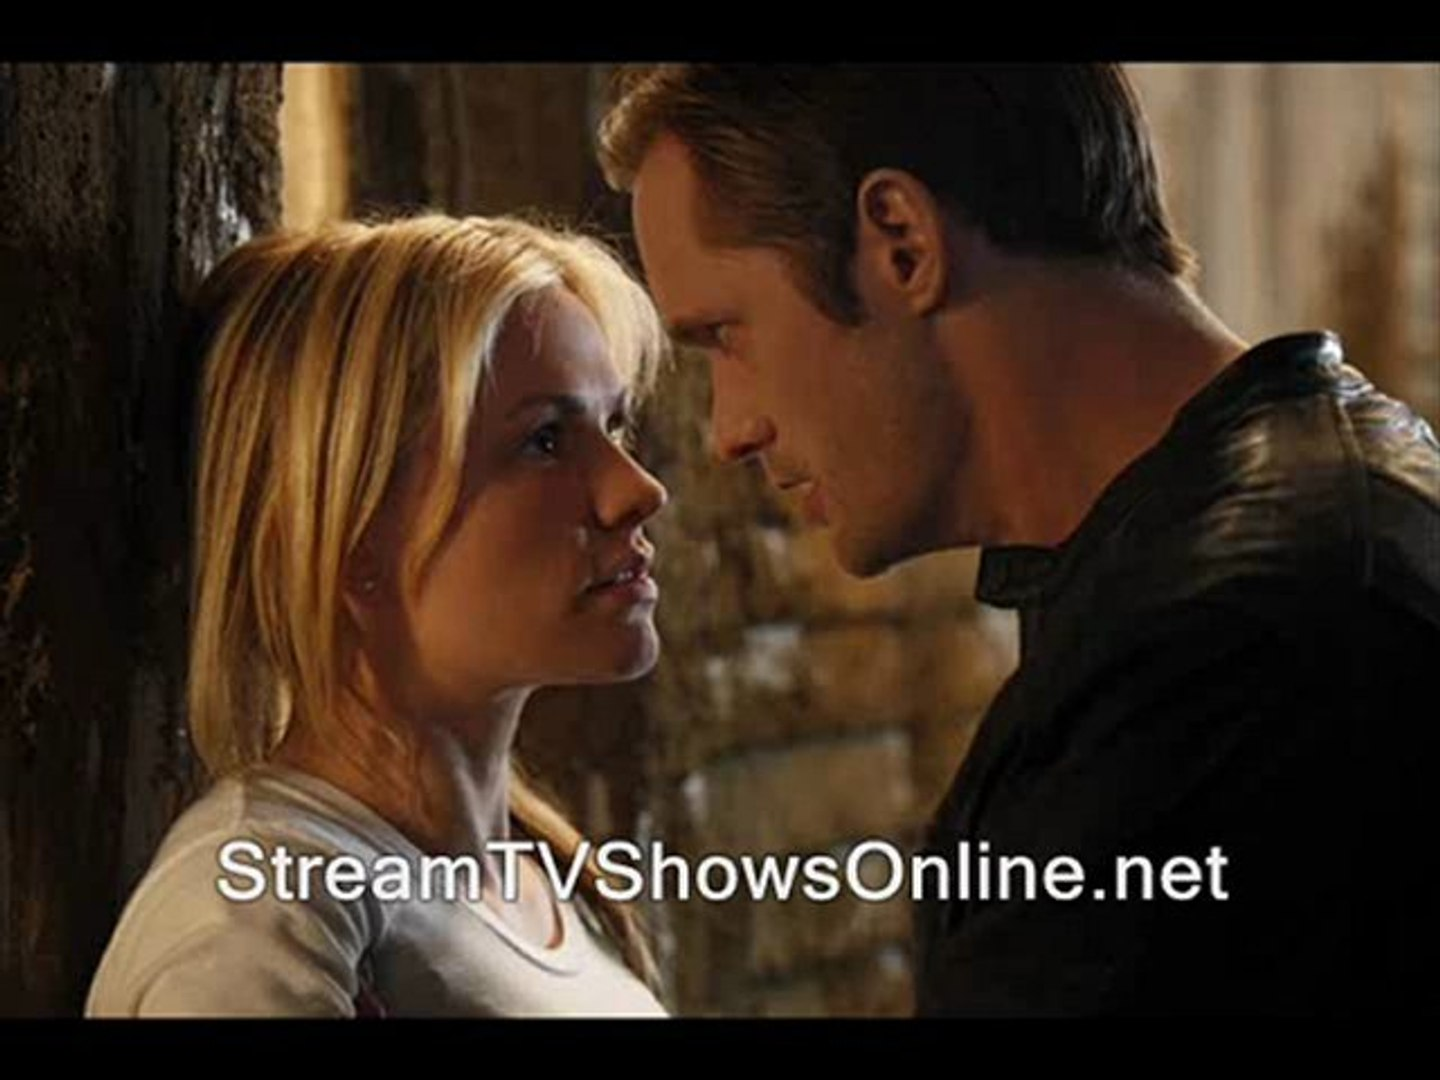 stream True Blood season 4 episode 1 She's Not There